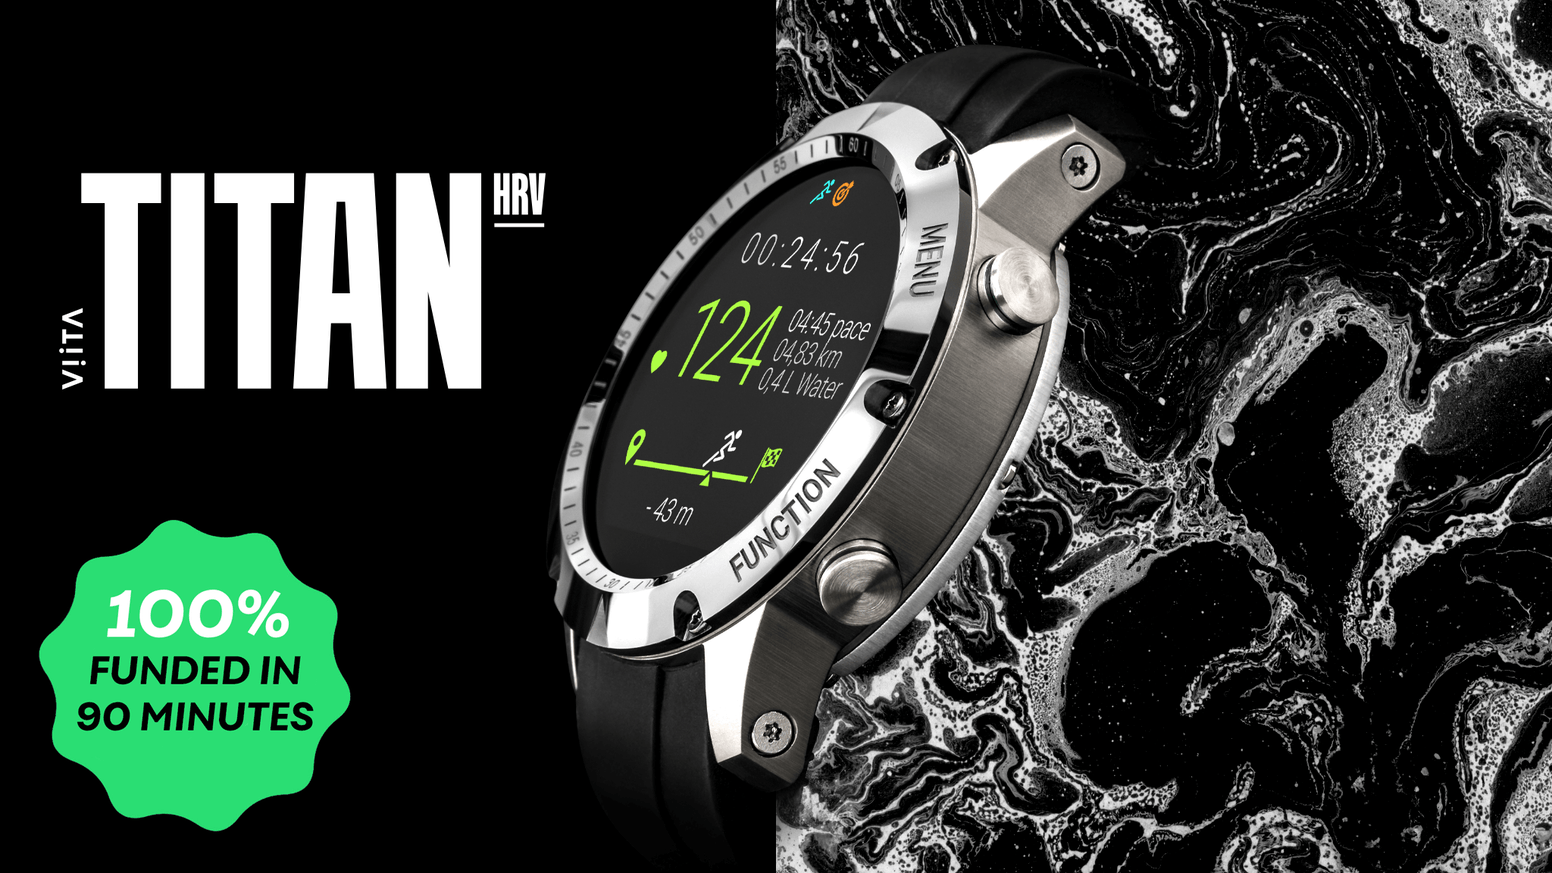 Titanium, ceramic, sapphire glass – All materials which you would want for a REAL luxury smartwatch.